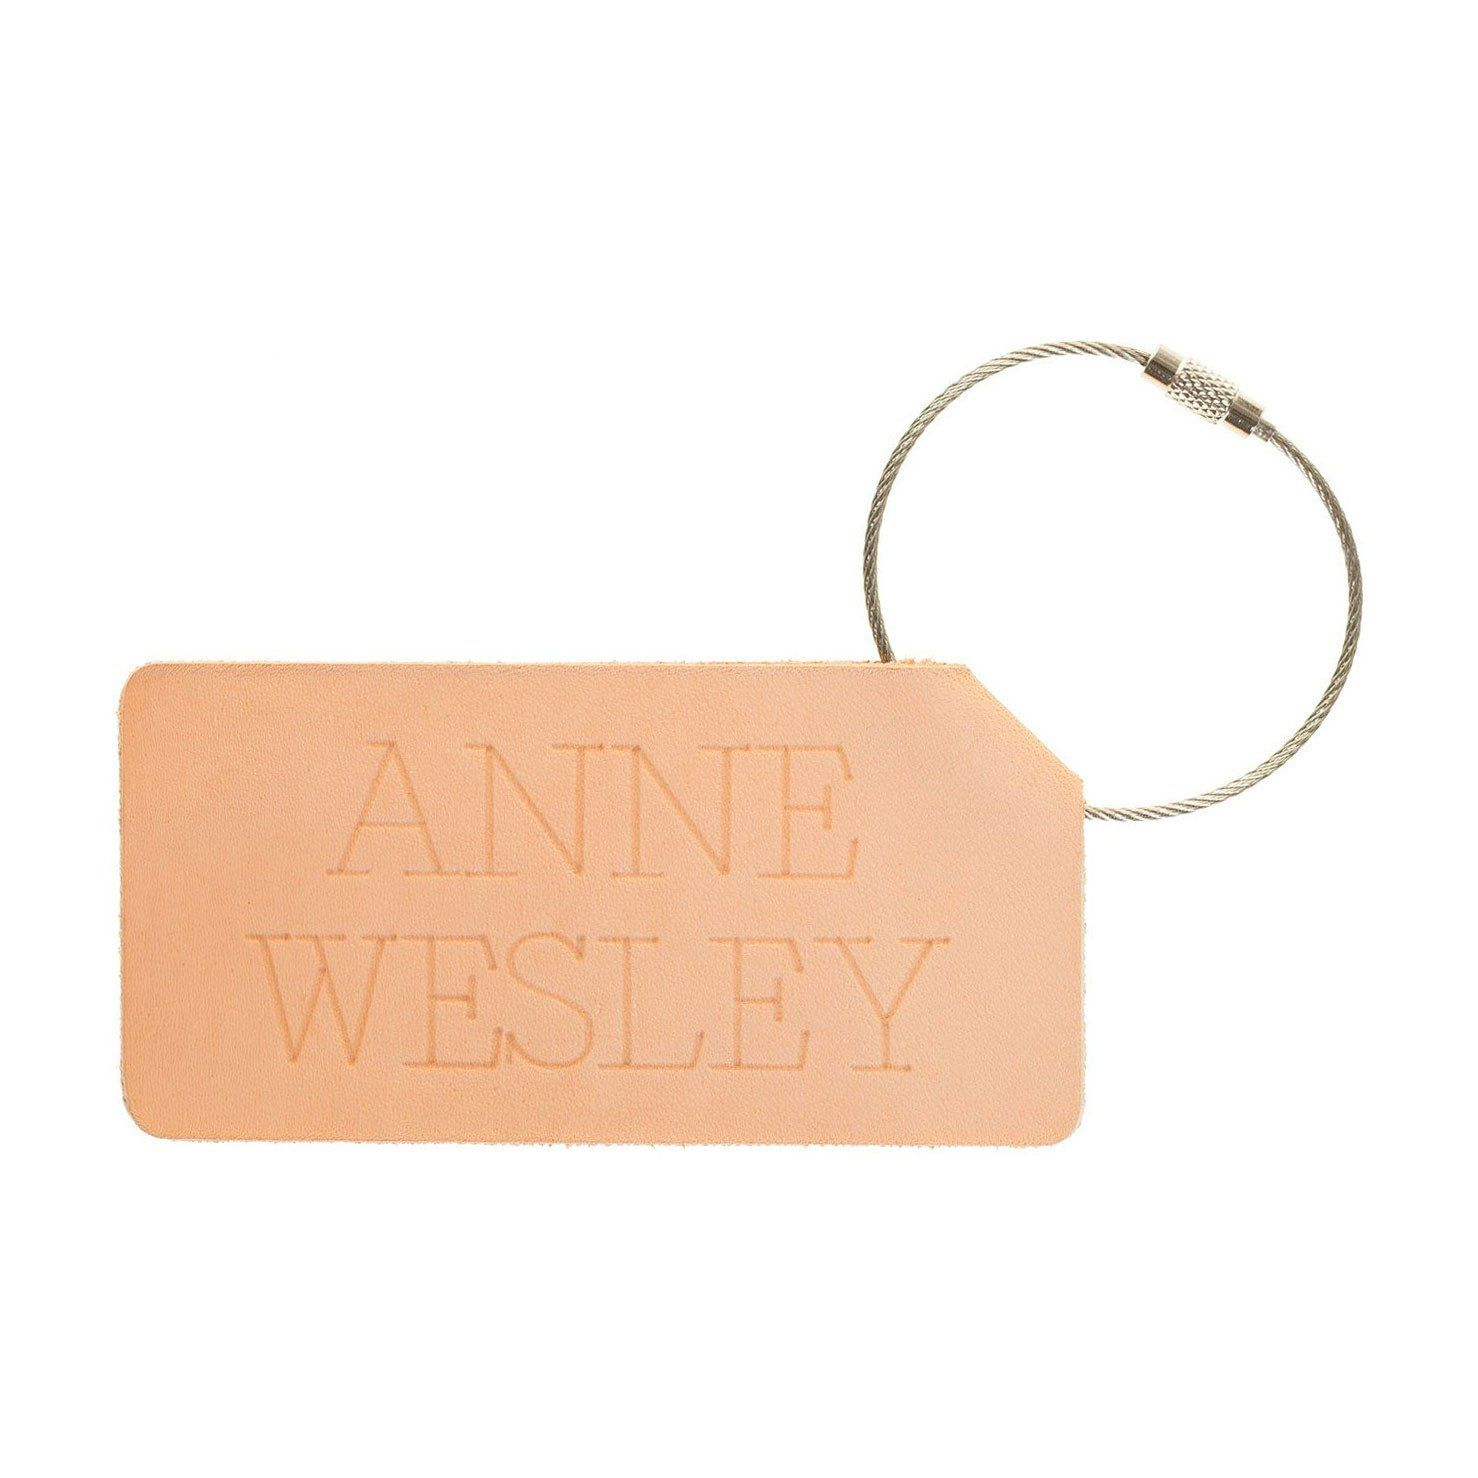 Personalized Folded Leather Luggage Tag - Reversible | Leather ...